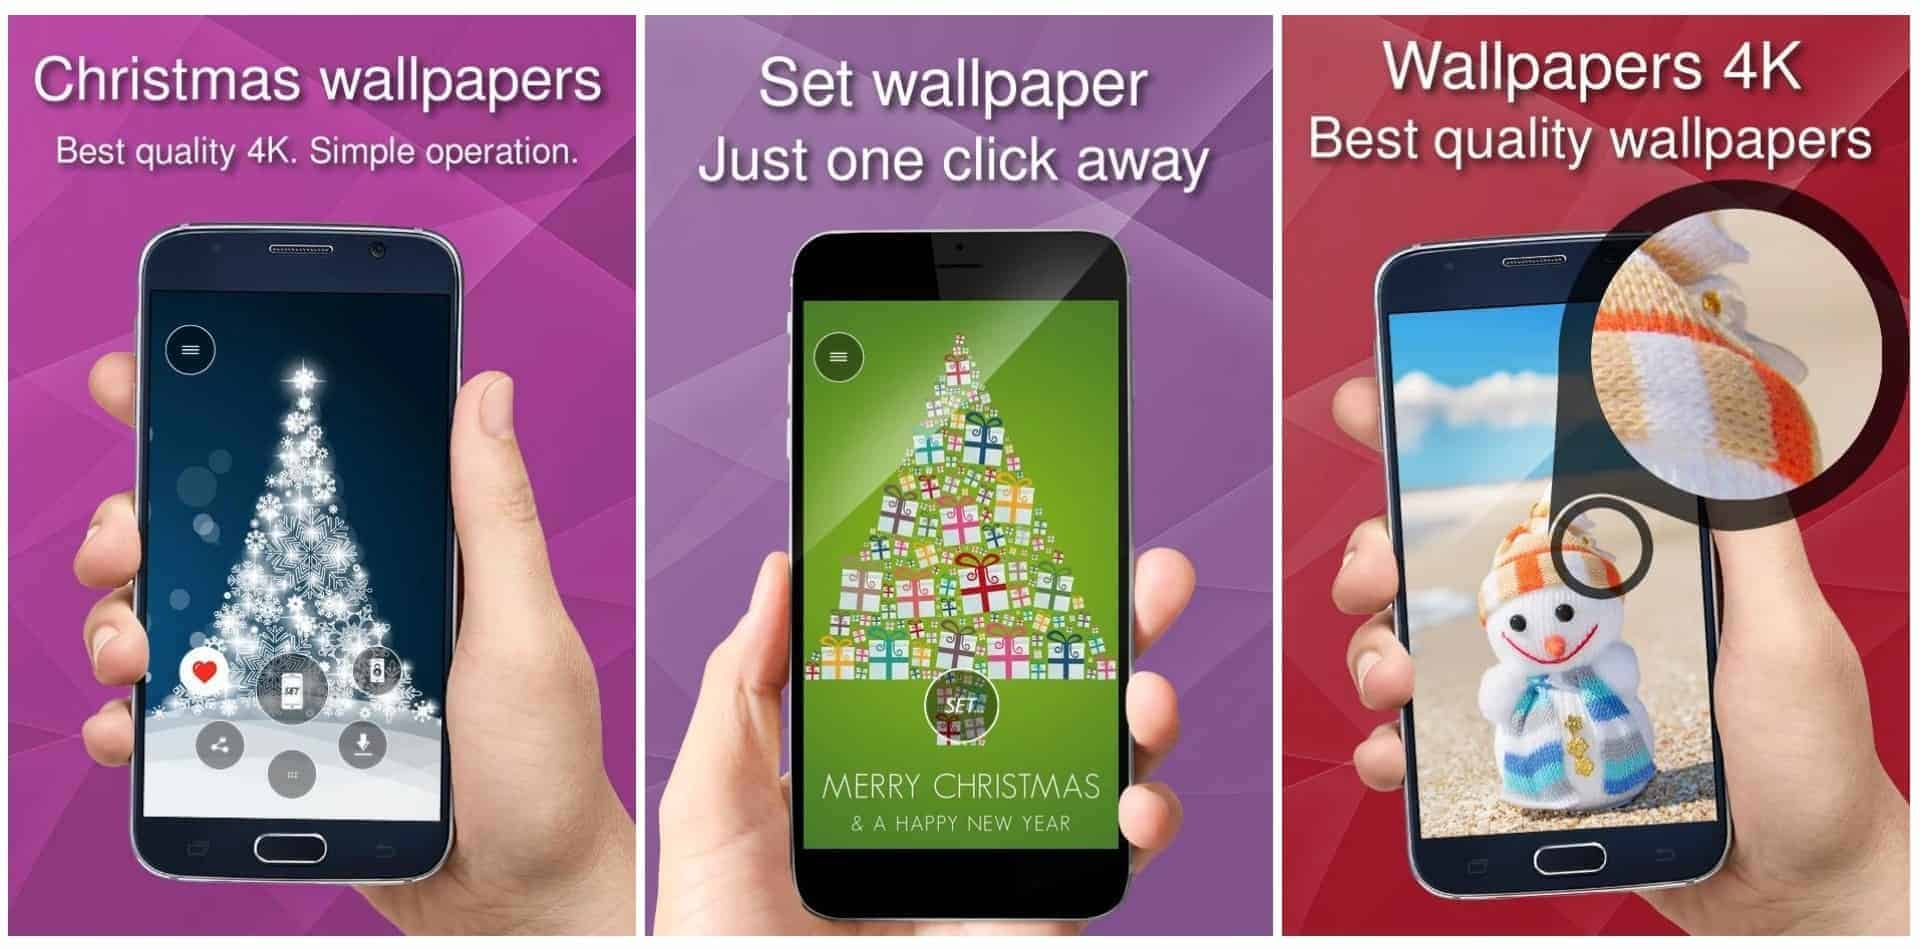 Christmas wallpapers app image December 2019